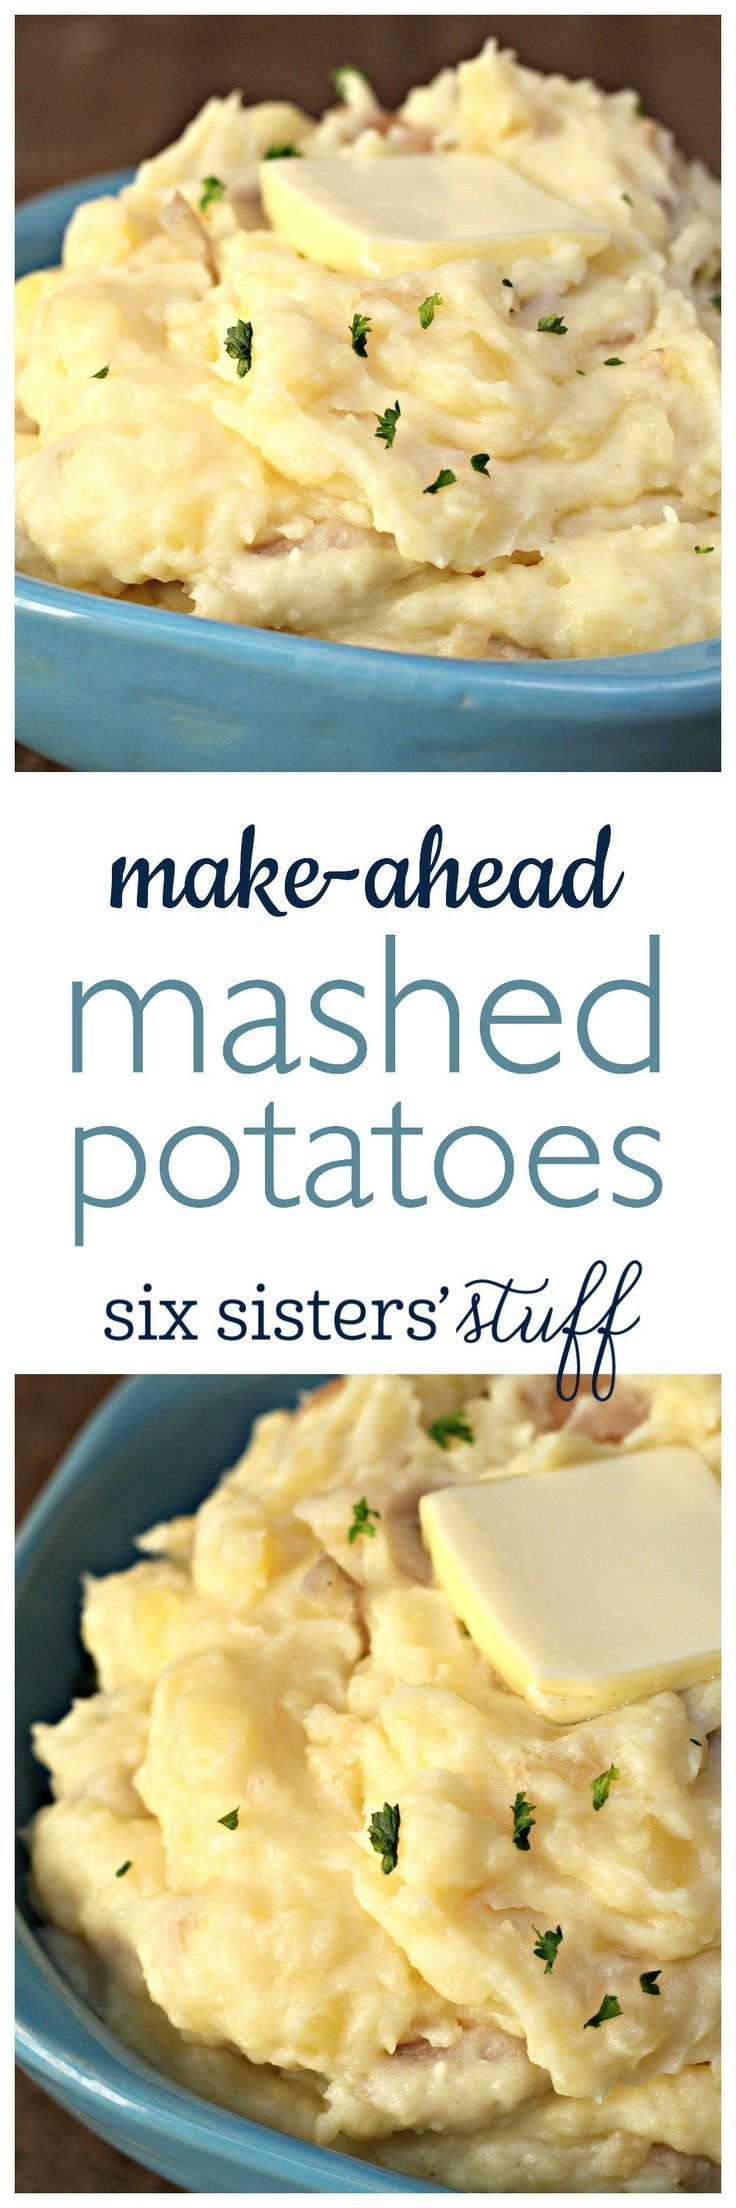 Make-Ahead Mashed Potatoes Six Sisters Stuff | Easter Dinner Recipes | Best Side Dishes | Creamy Potato Recipe